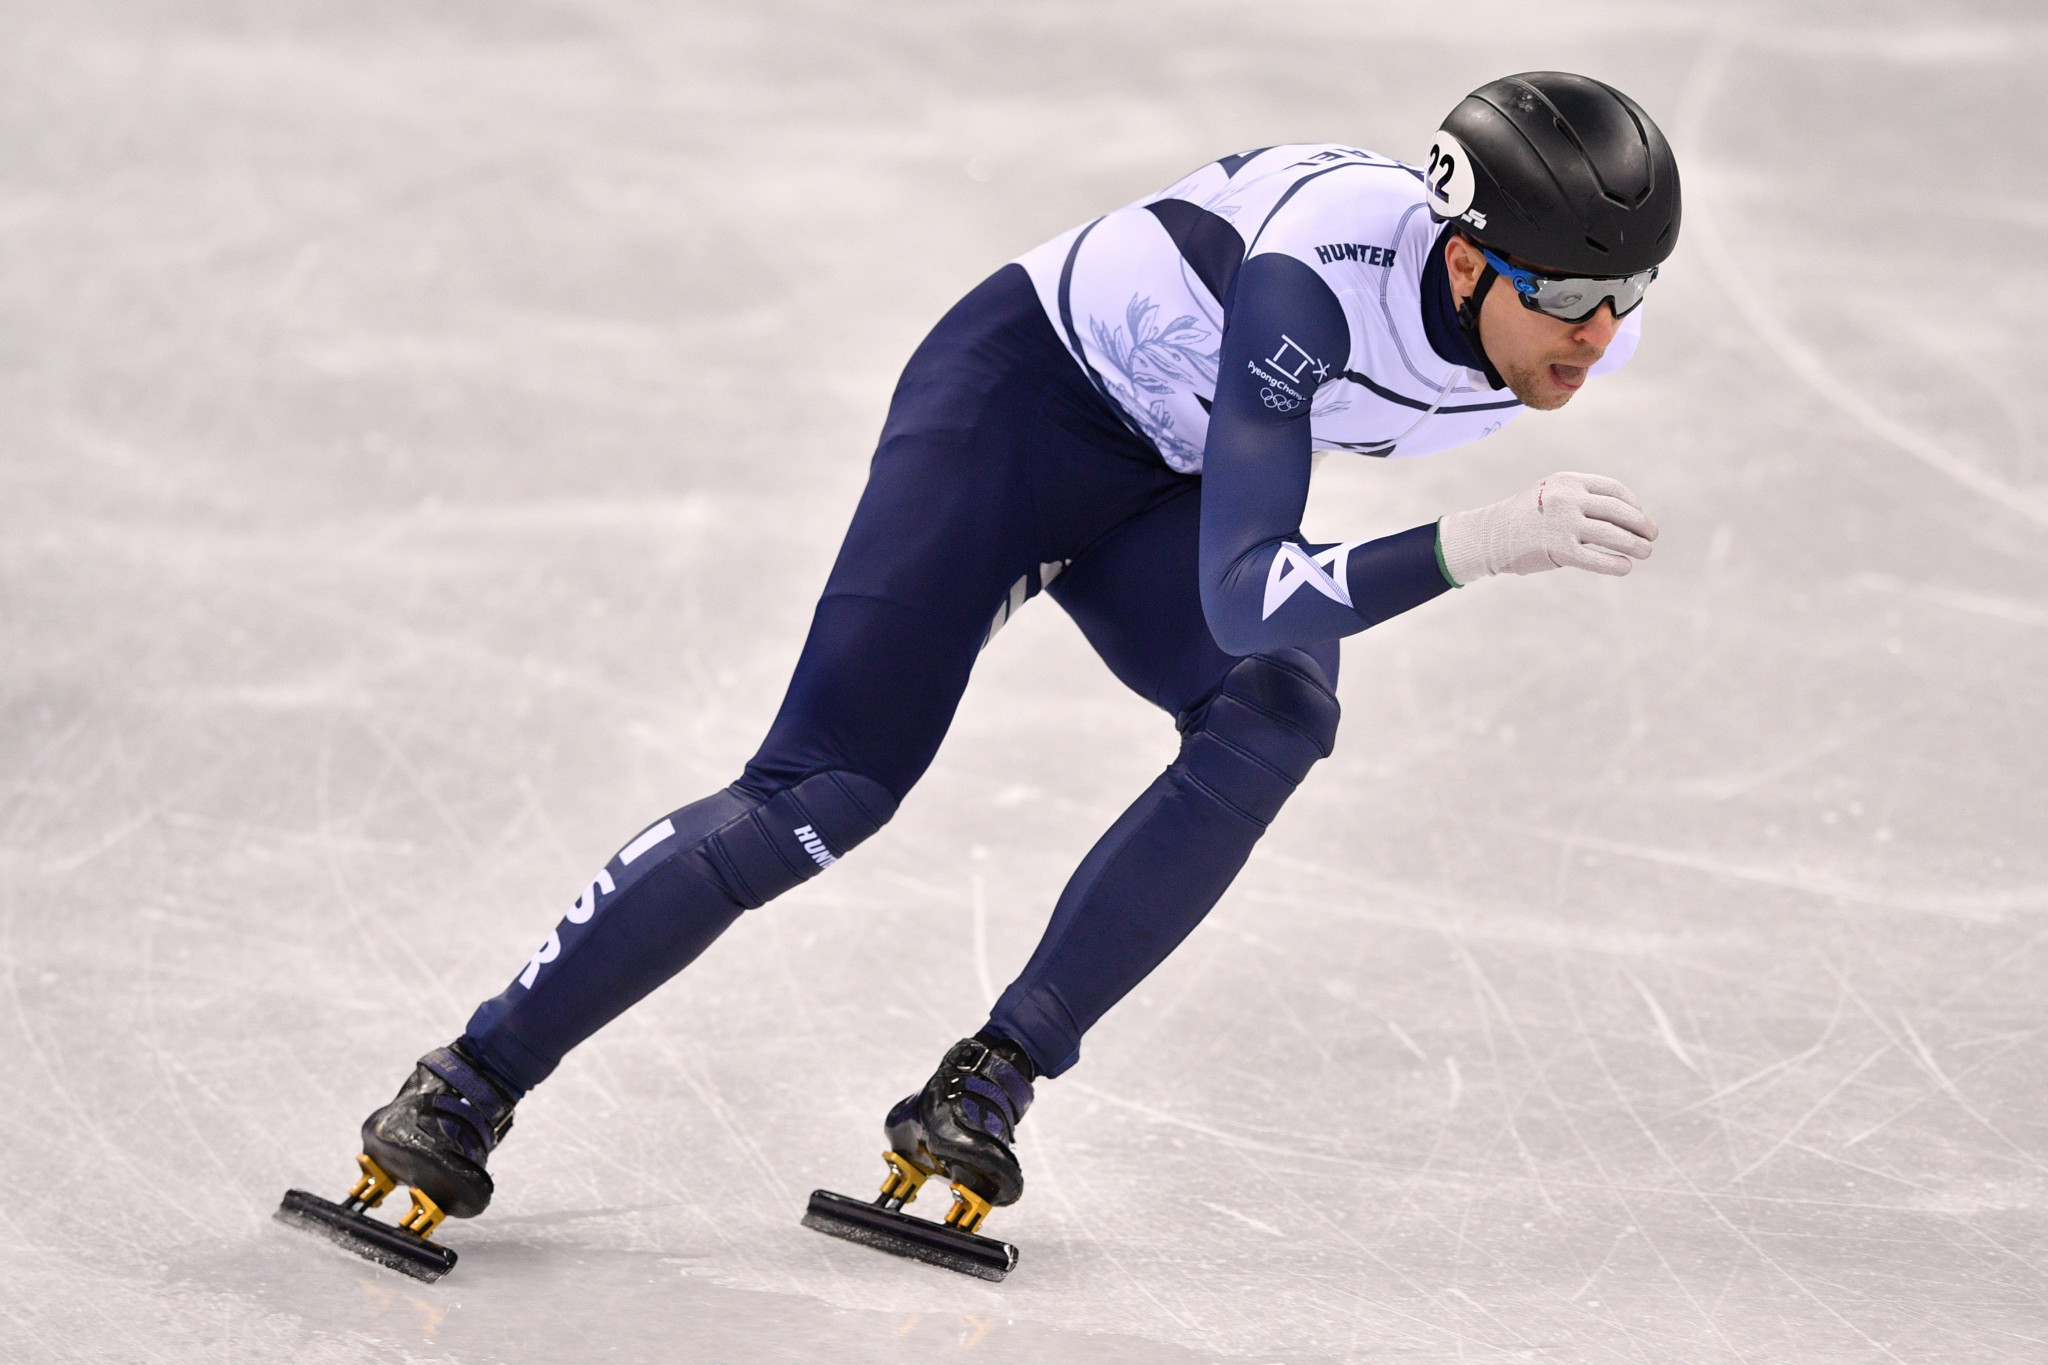 Israel's Vladislav Bykanov was the fastest qualifier in the men's 1,000m and 1,500m event on the first day of the ISU European Short Track Speed Skating Championships ©Getty Images